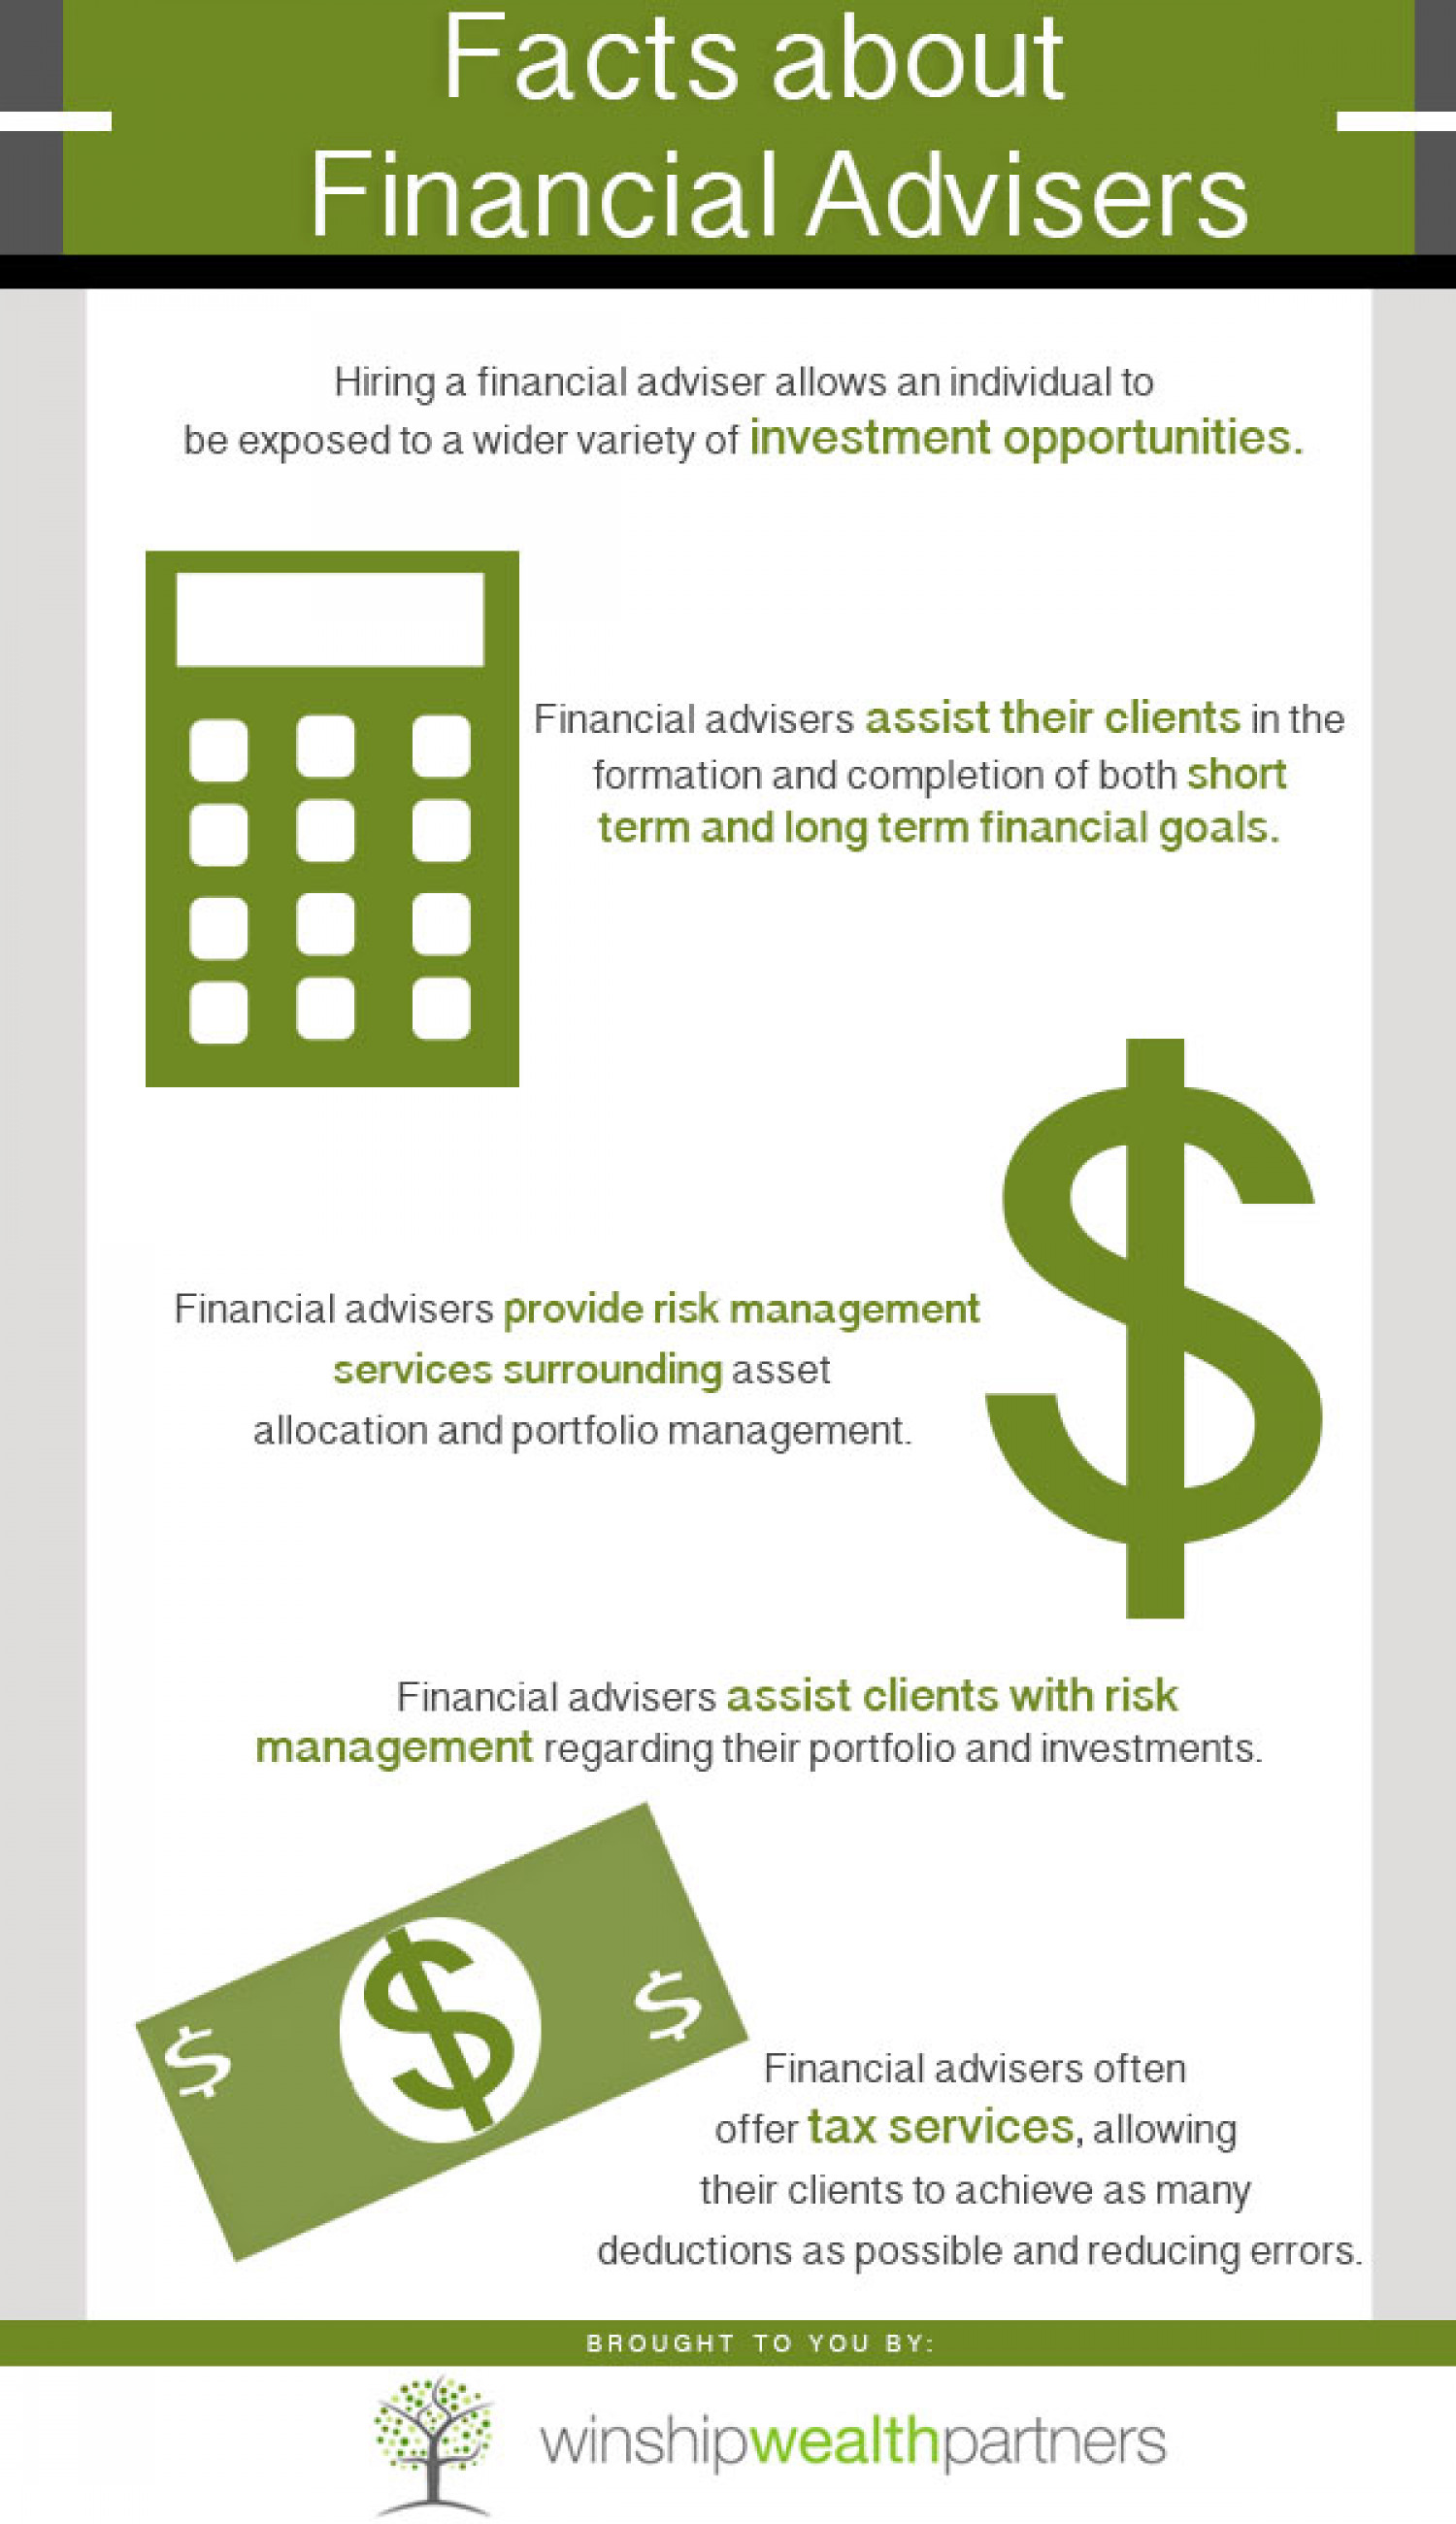 Facts About Financial Advisers Infographic